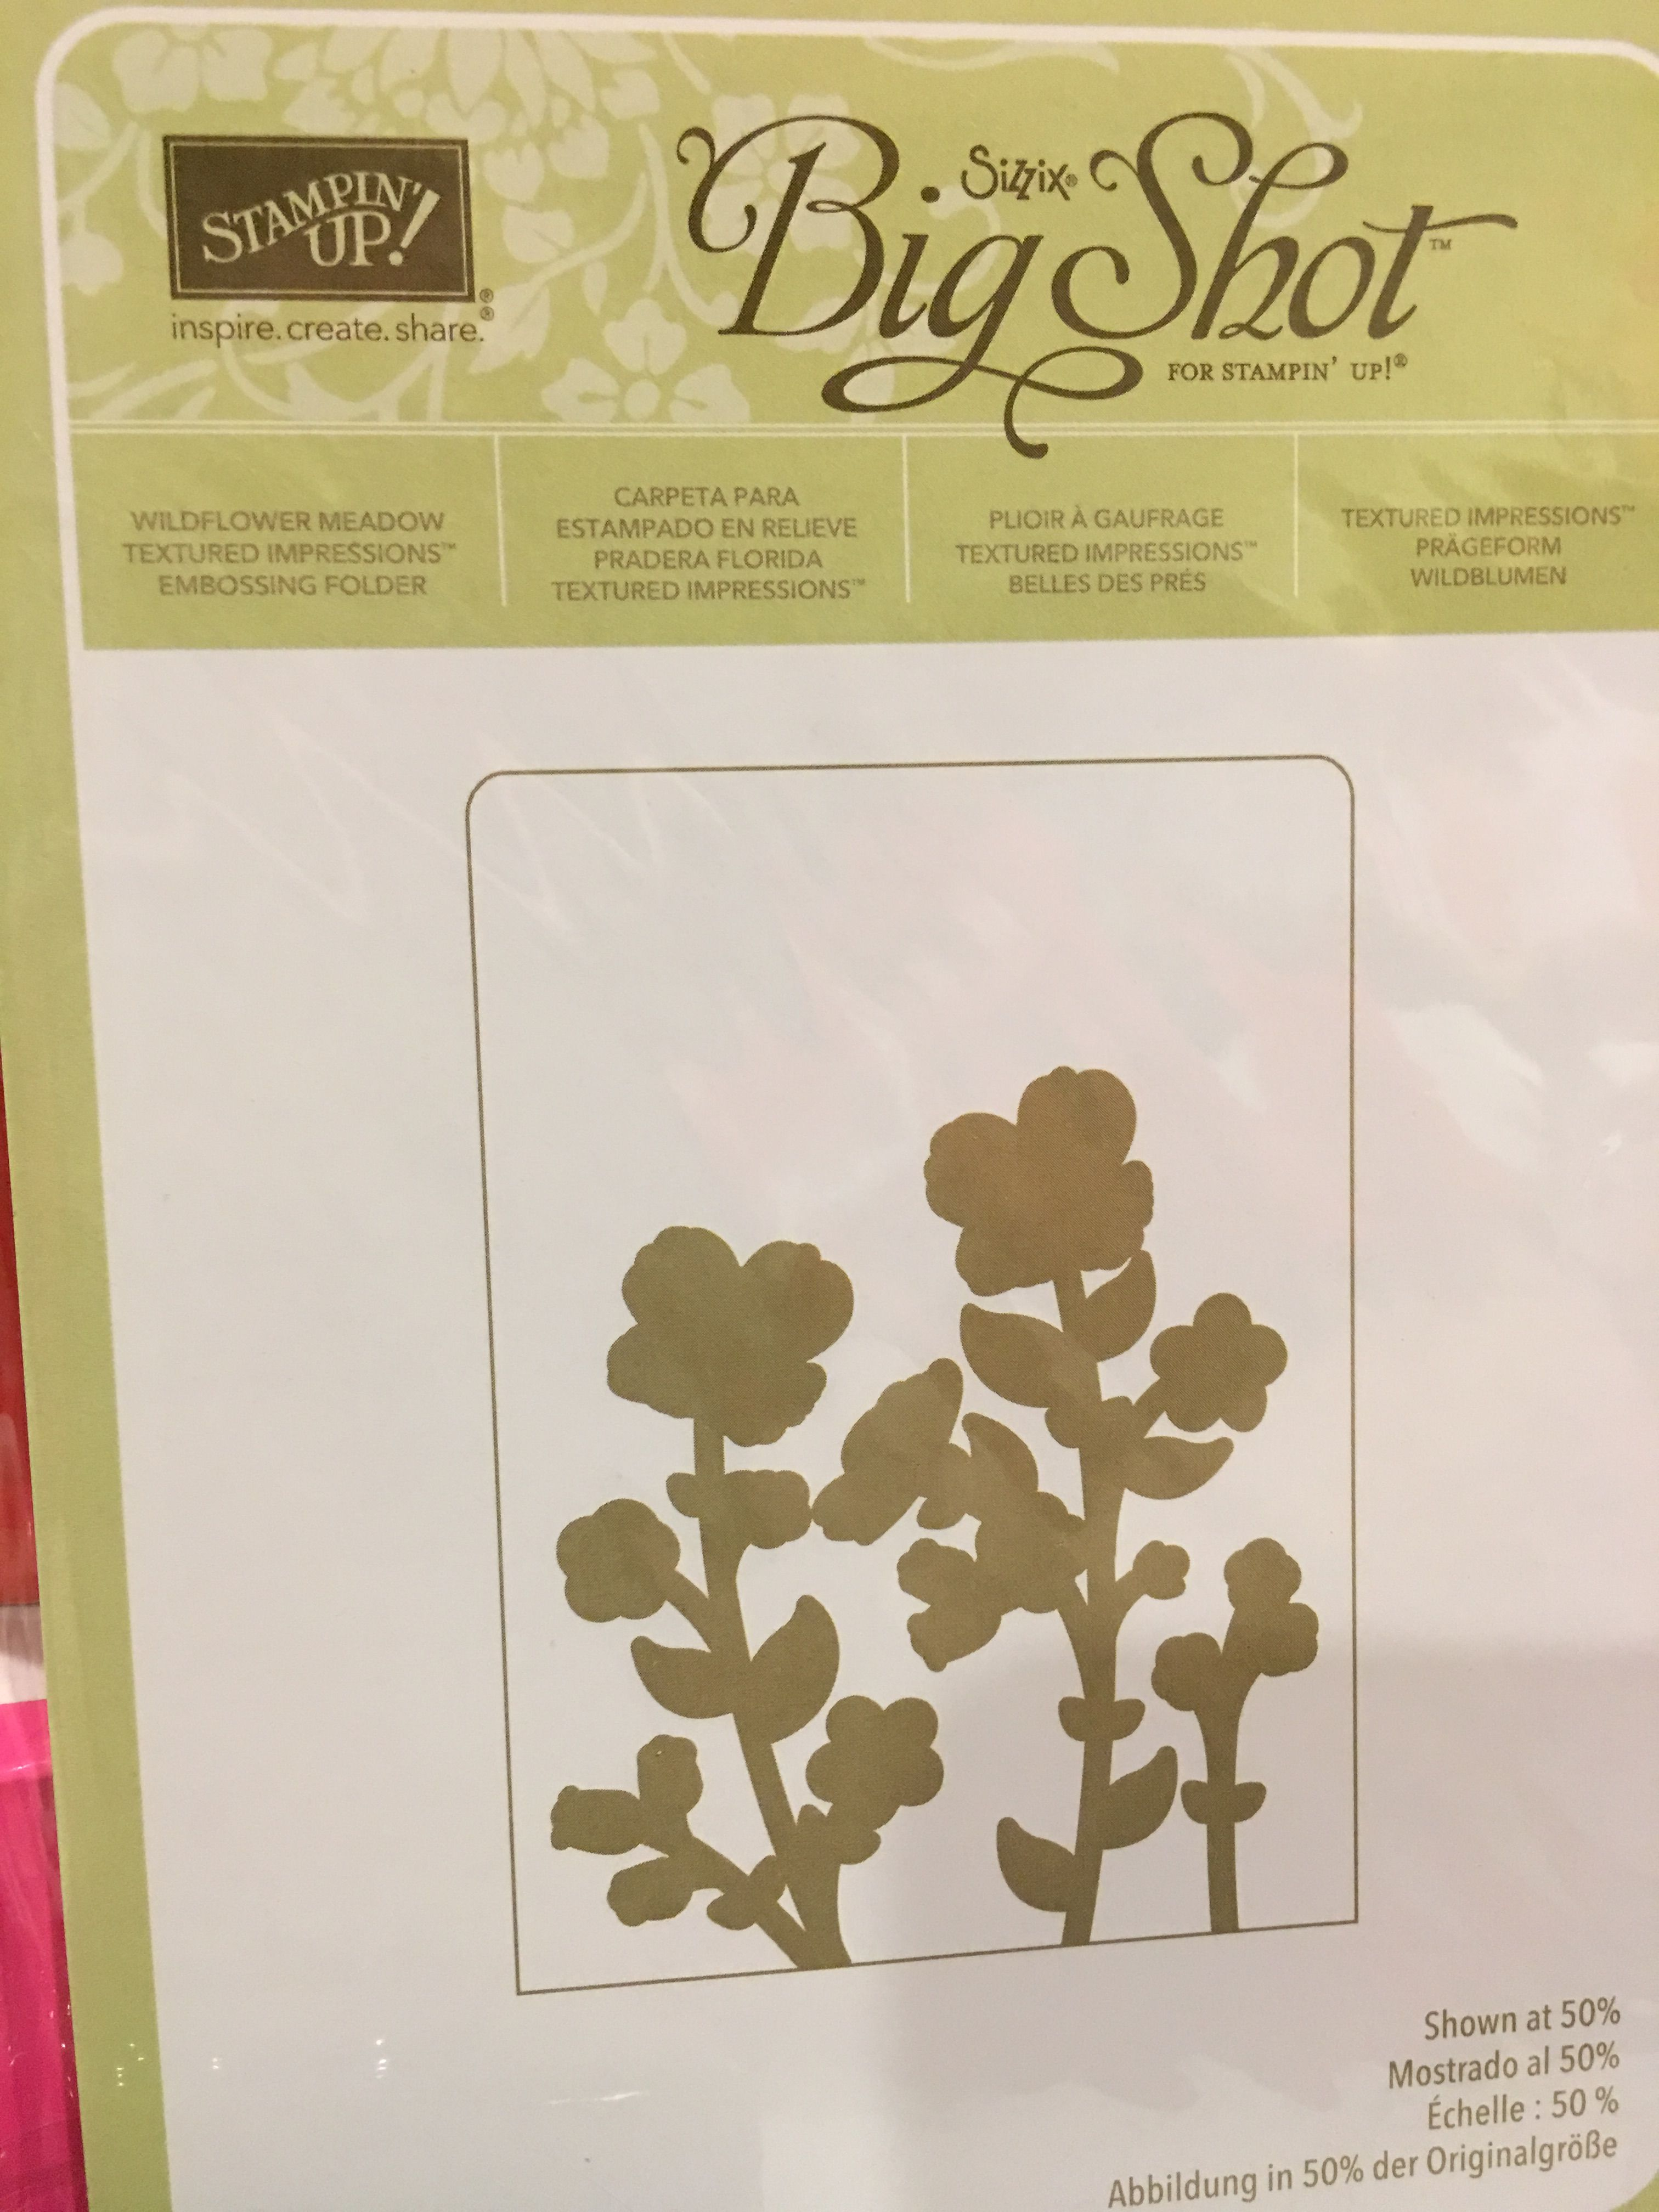 Stampin/' Up! For Use with the Big Shot and Other Die Cutting Machines Wildflower Meadow Textured Impressions Embossing Folder